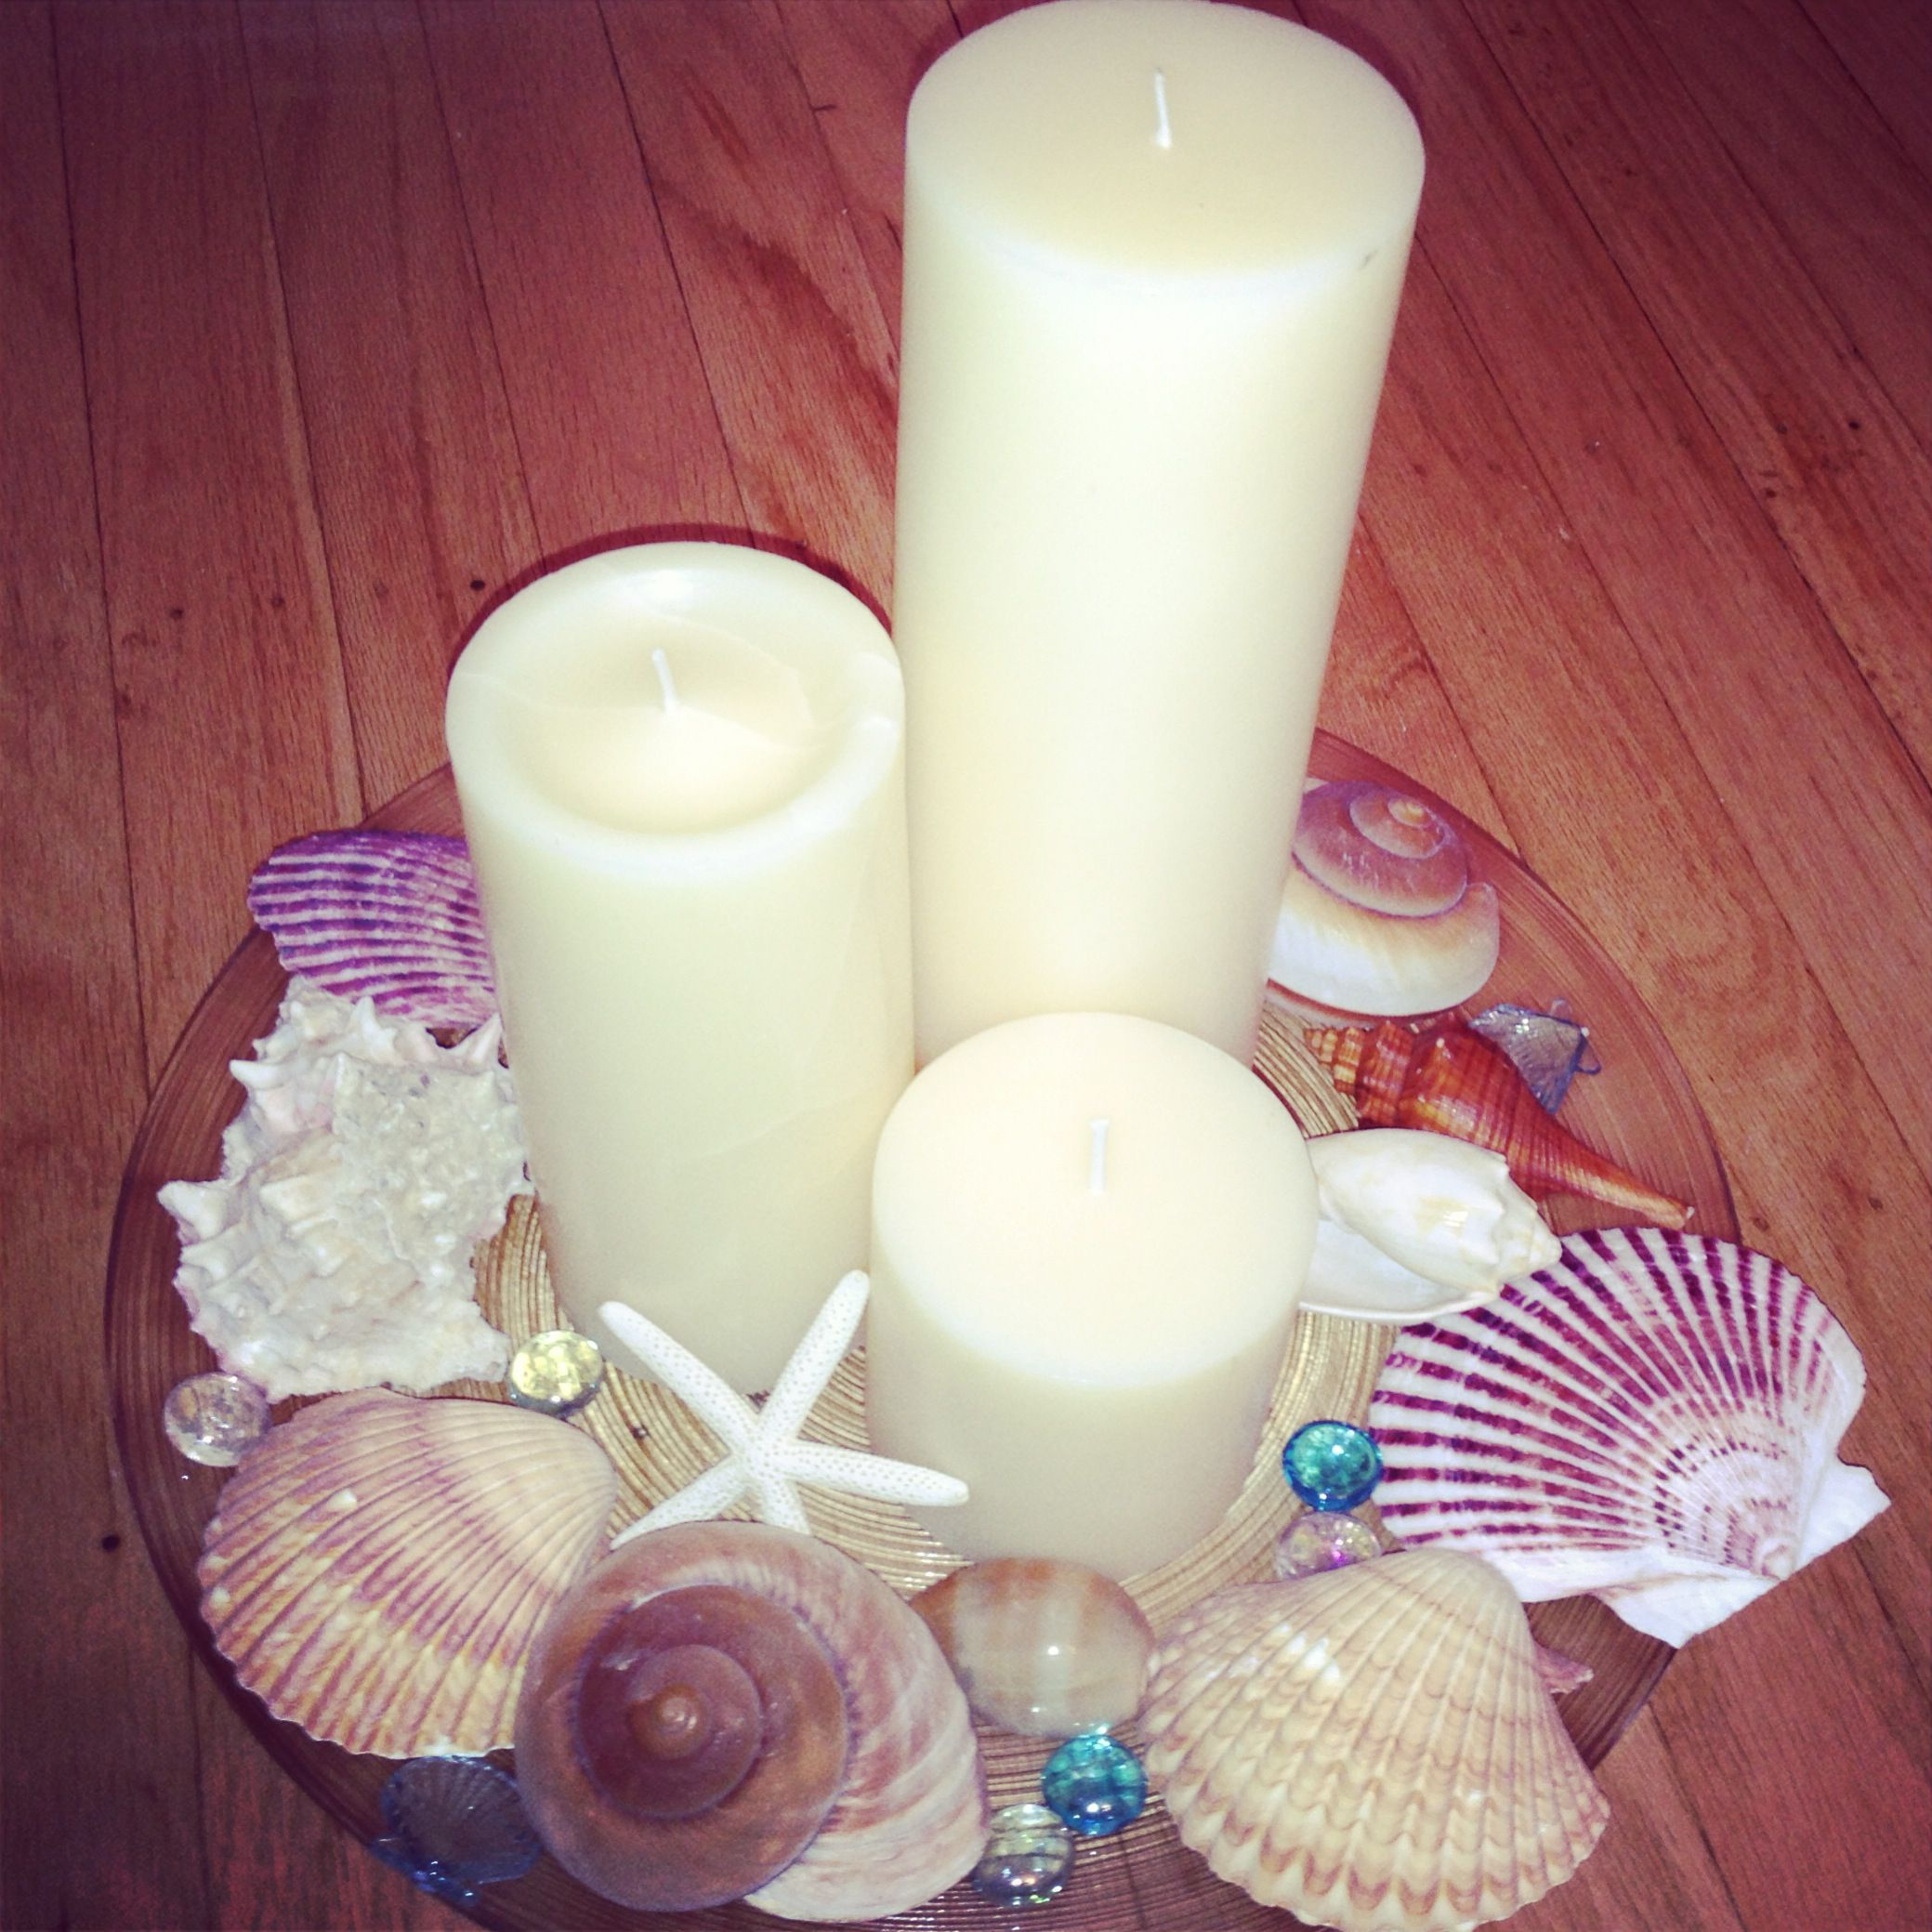 Beach wedding centerpieces - candles and seashells